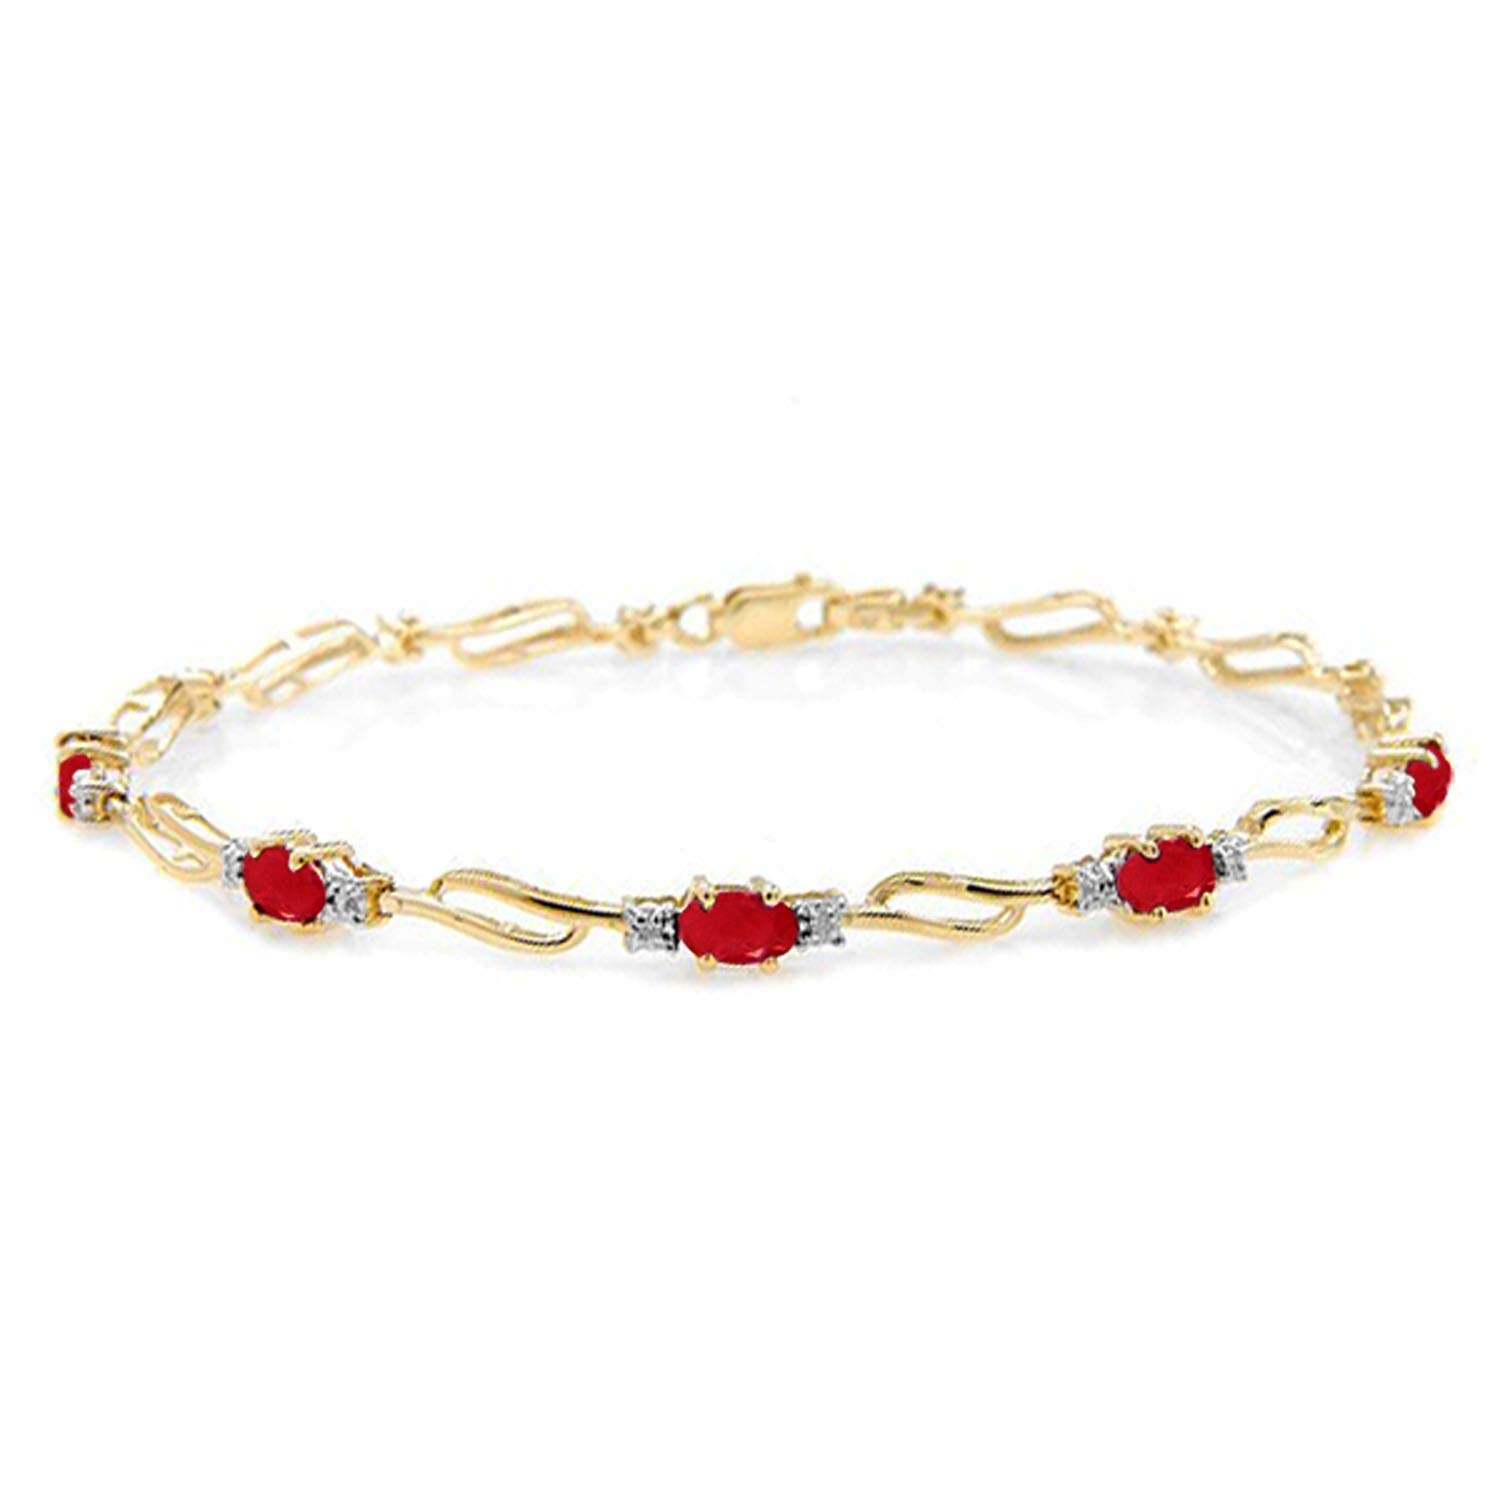 Galaxy Gold 14K Solid Yellow Gold Tennis Bracelet with Natural 4.21 Carat Ruby and Diamond - Size 8.0